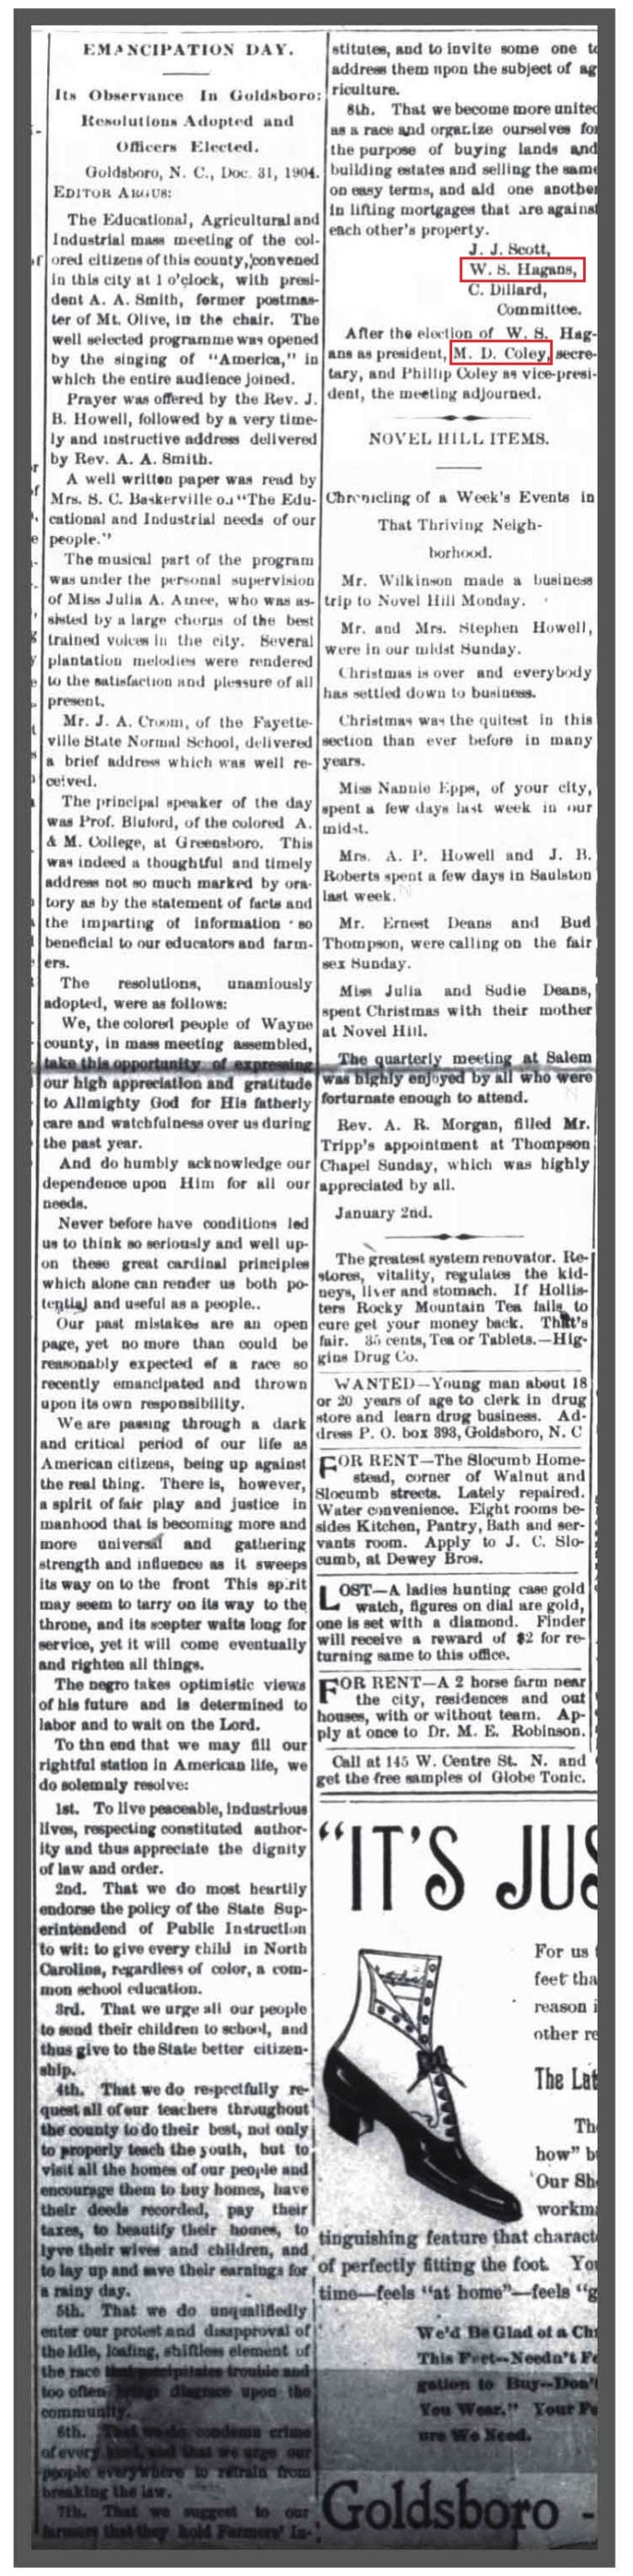 Gboro Daily Argus 12 31 1905 Emancipation Day